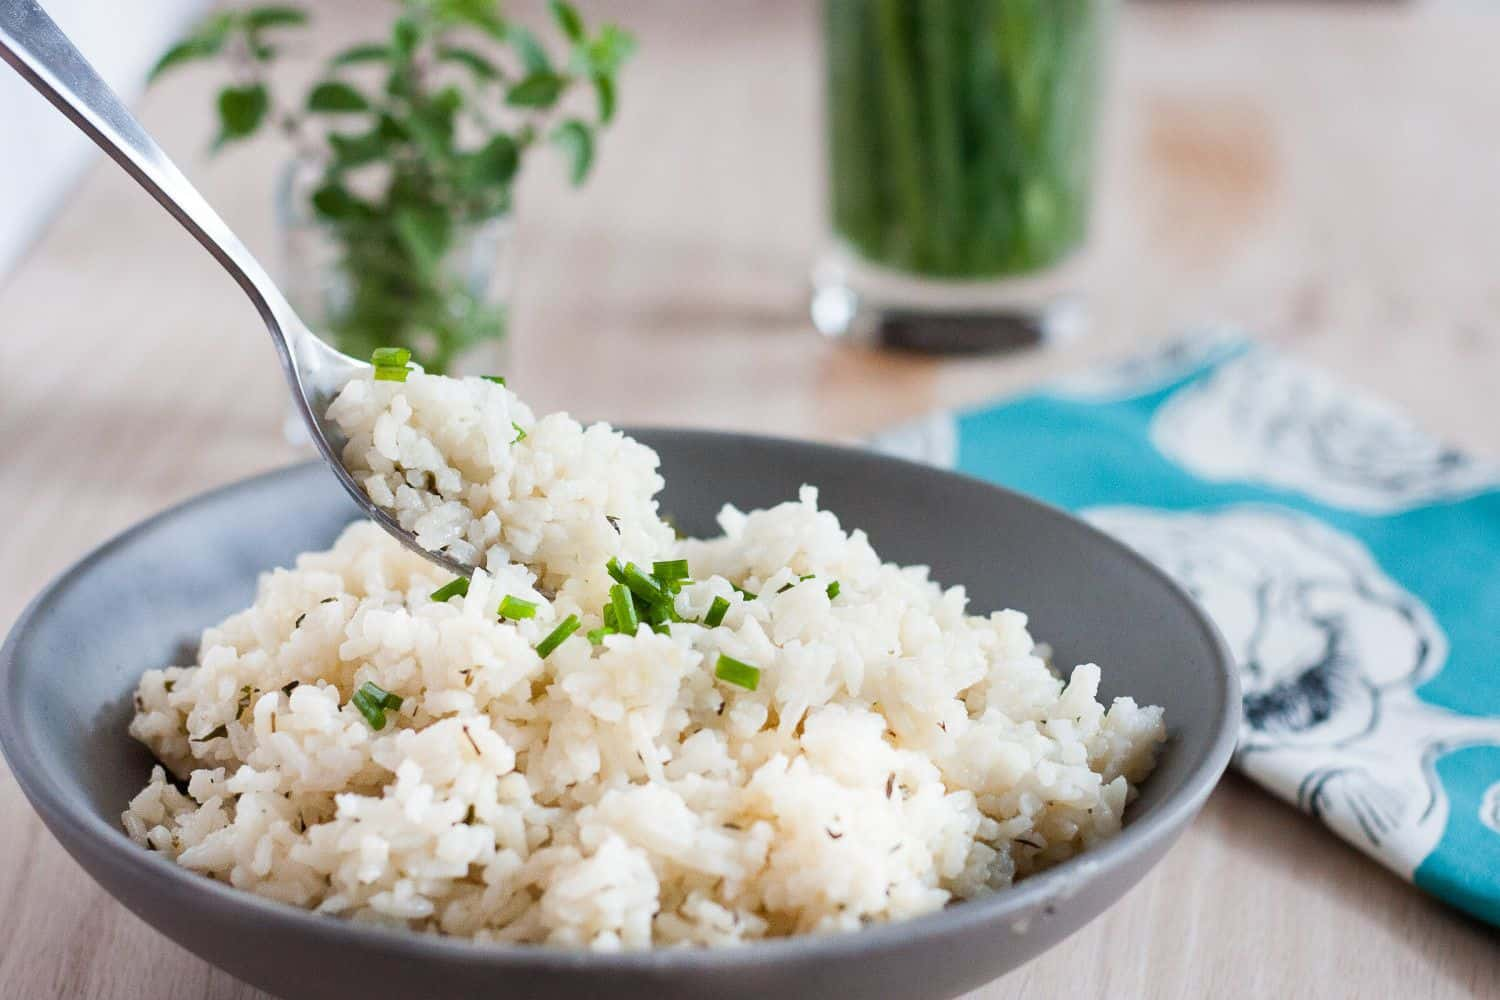 A recipe worth raiding the herb garden! Basil, thyme, oregano, and chives make this from-scratch pilaf colorful and tastier than anything you can buy in a box!